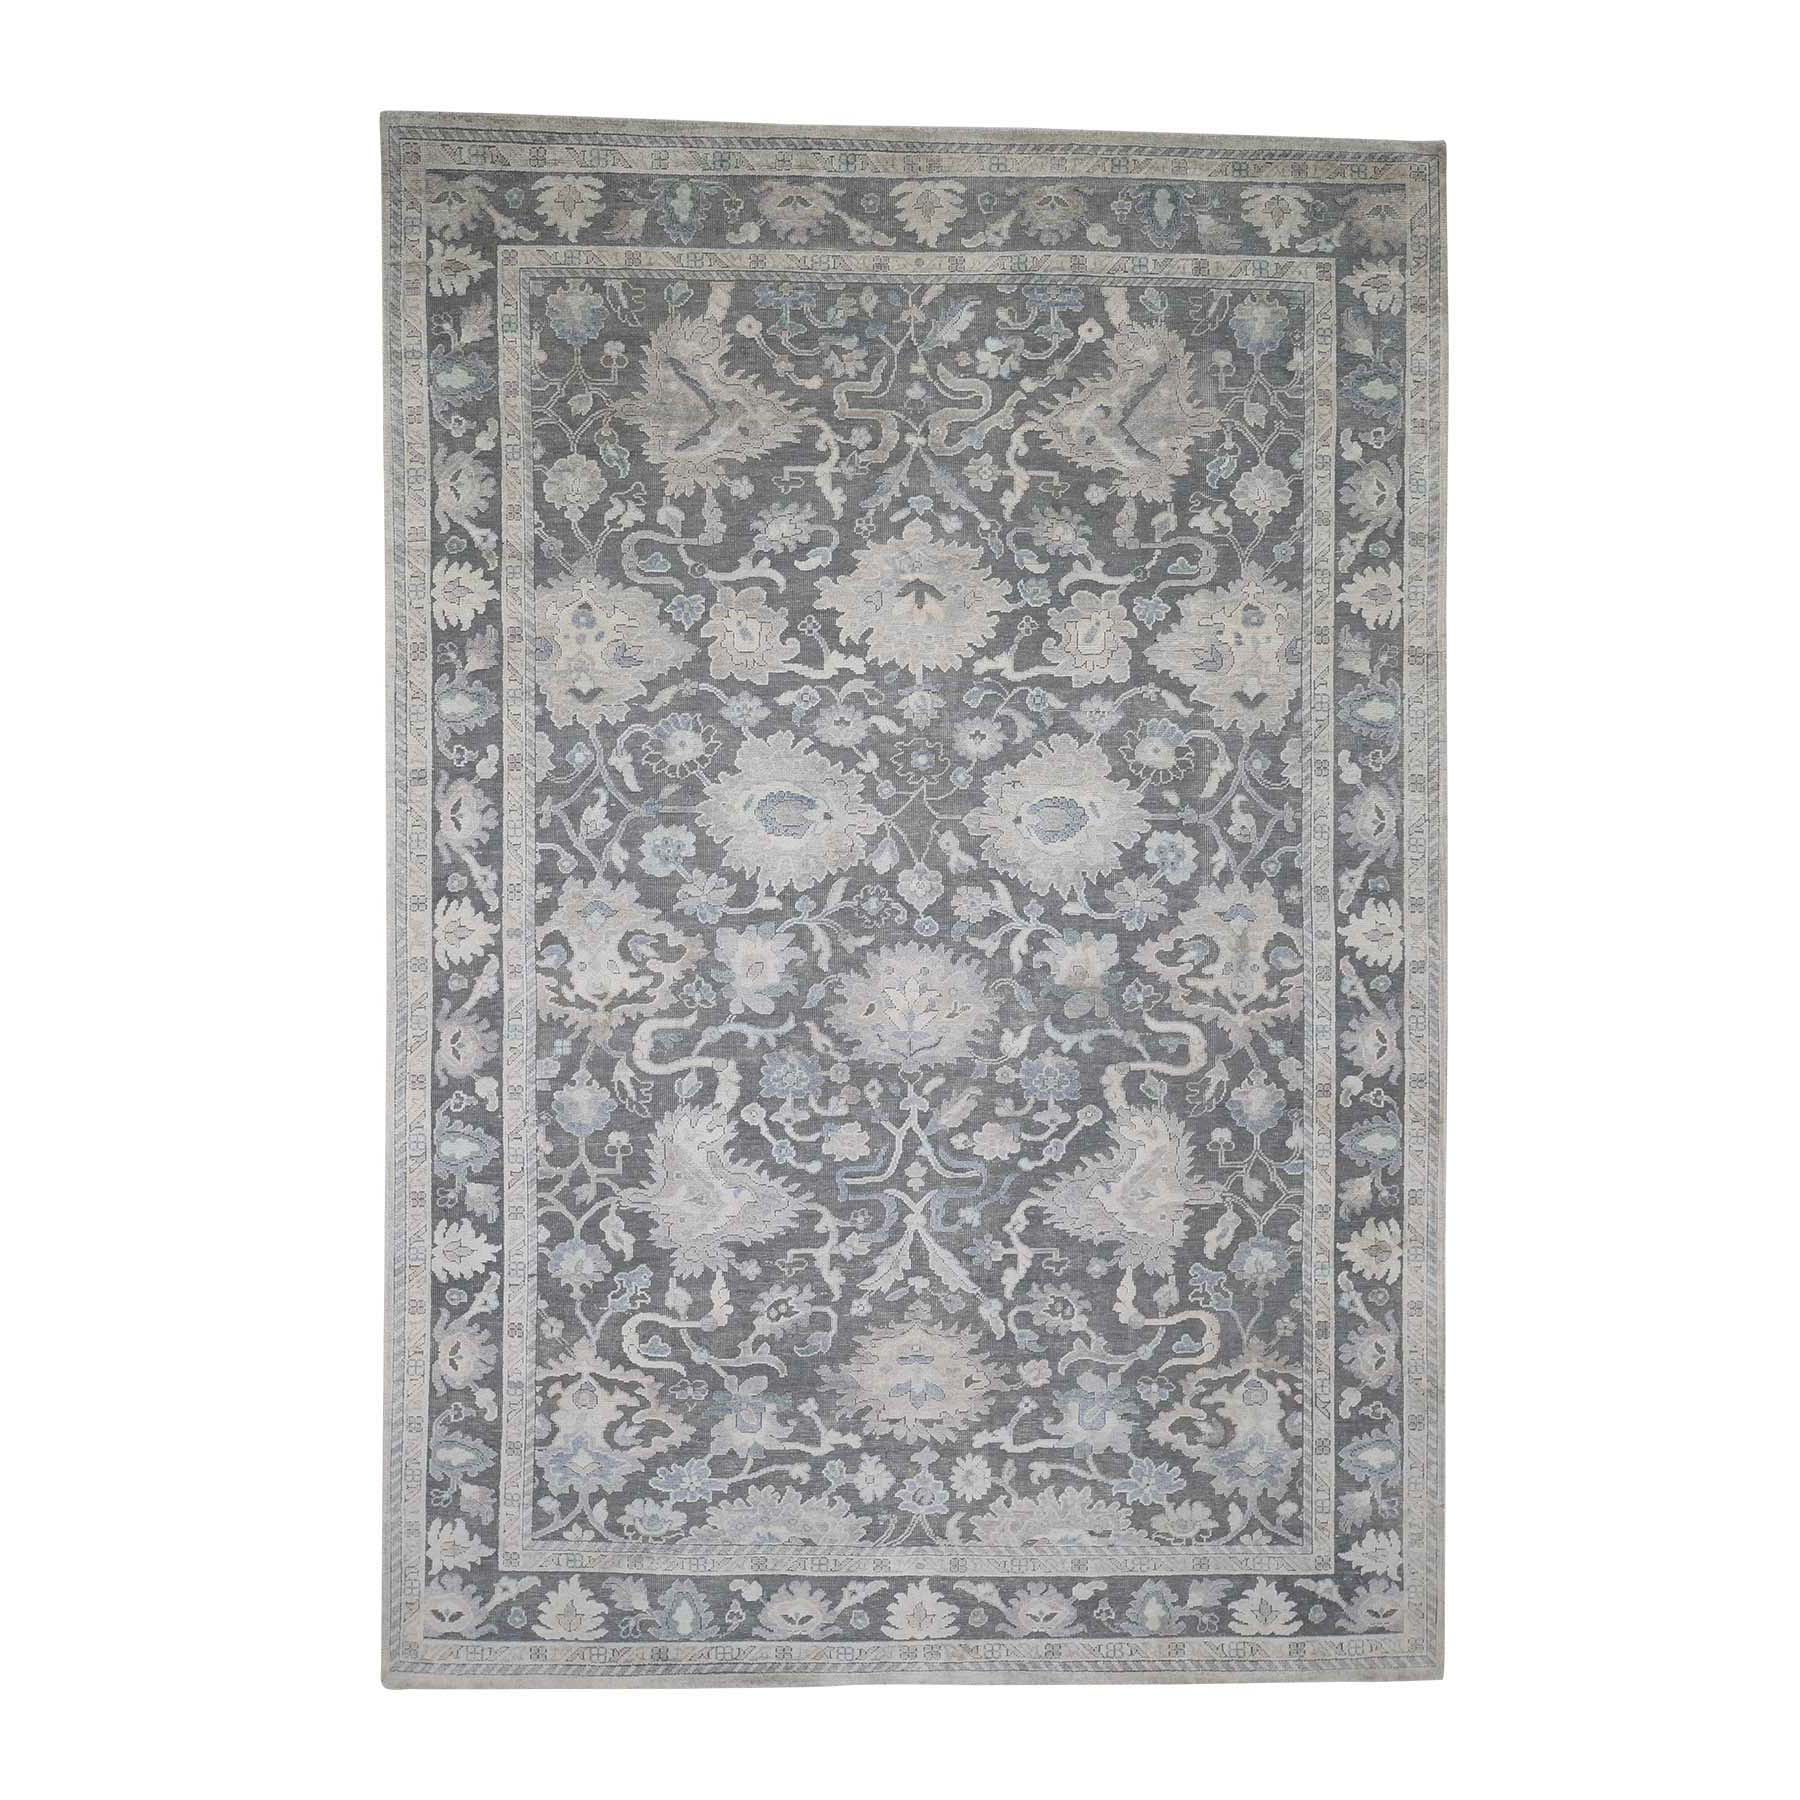 "6'1""x8'9"" Hand-Knotted Oushak Influence Silk Textured Wool Oriental Rug"